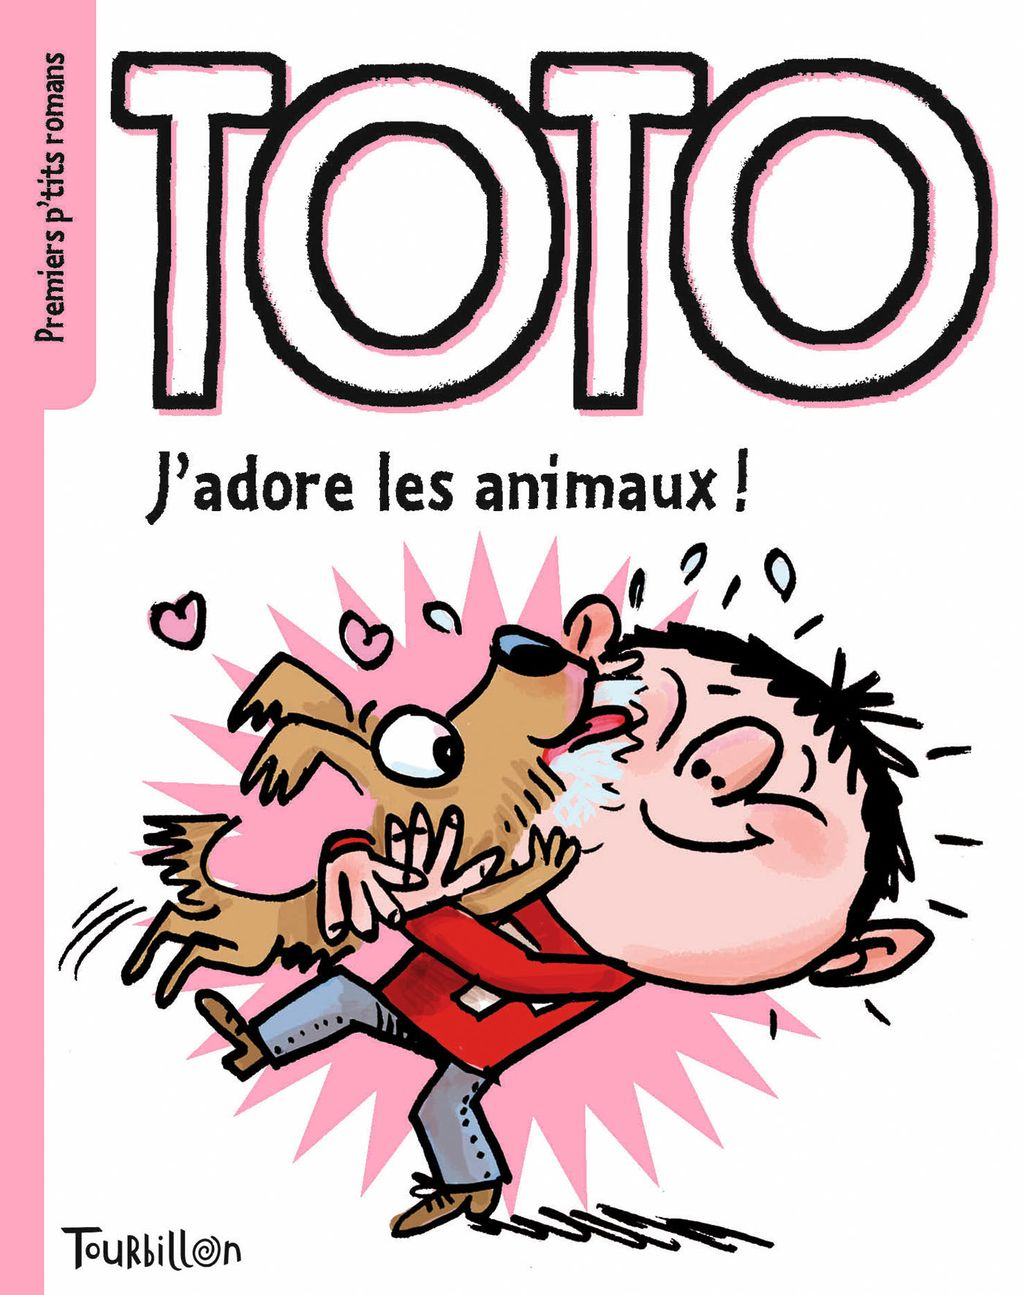 « Toto, jadore les animaux » cover